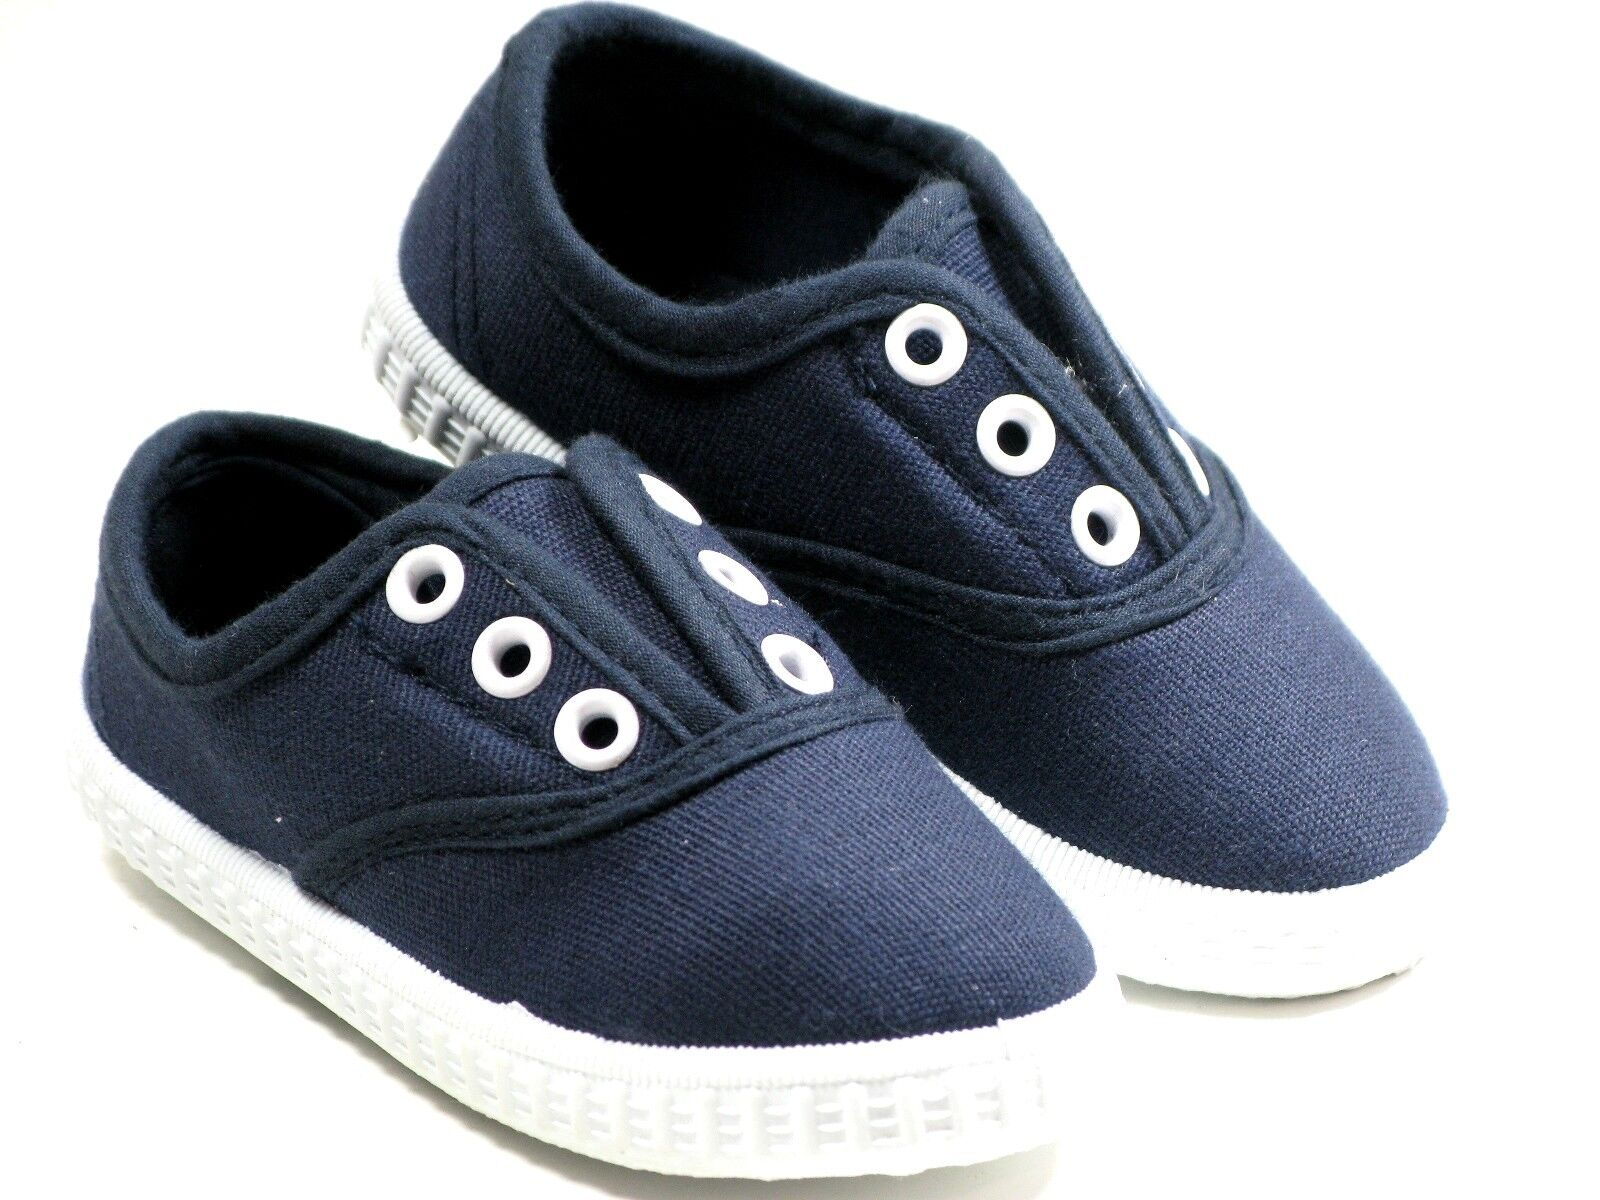 Slipon For Baby Toddler Girls Or Boys Canvas Shoes Sizes 4